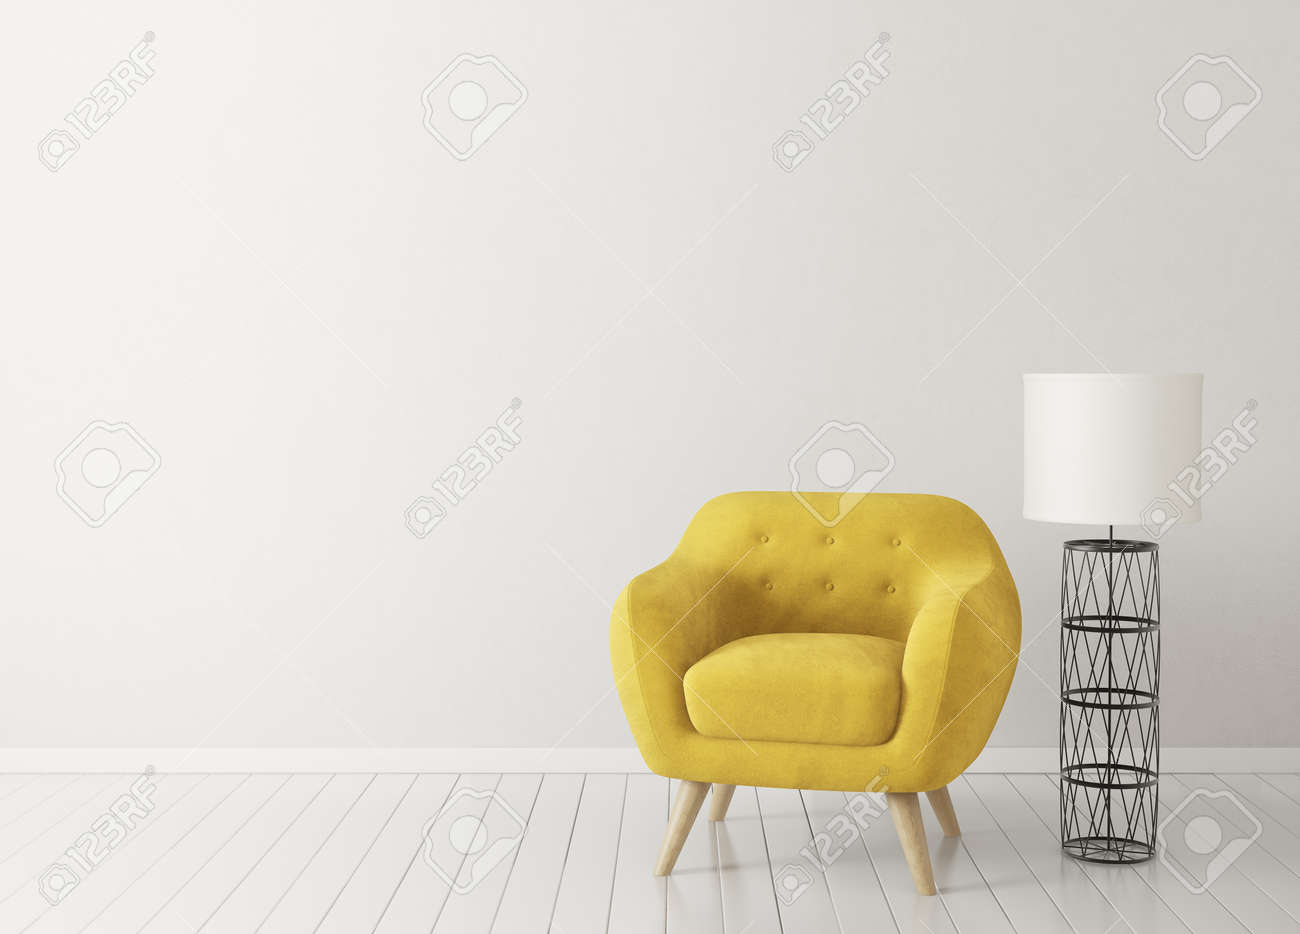 photo stock illustration modern living room with yellow armchair and lamp scandinavian interior design furniture 3d render il